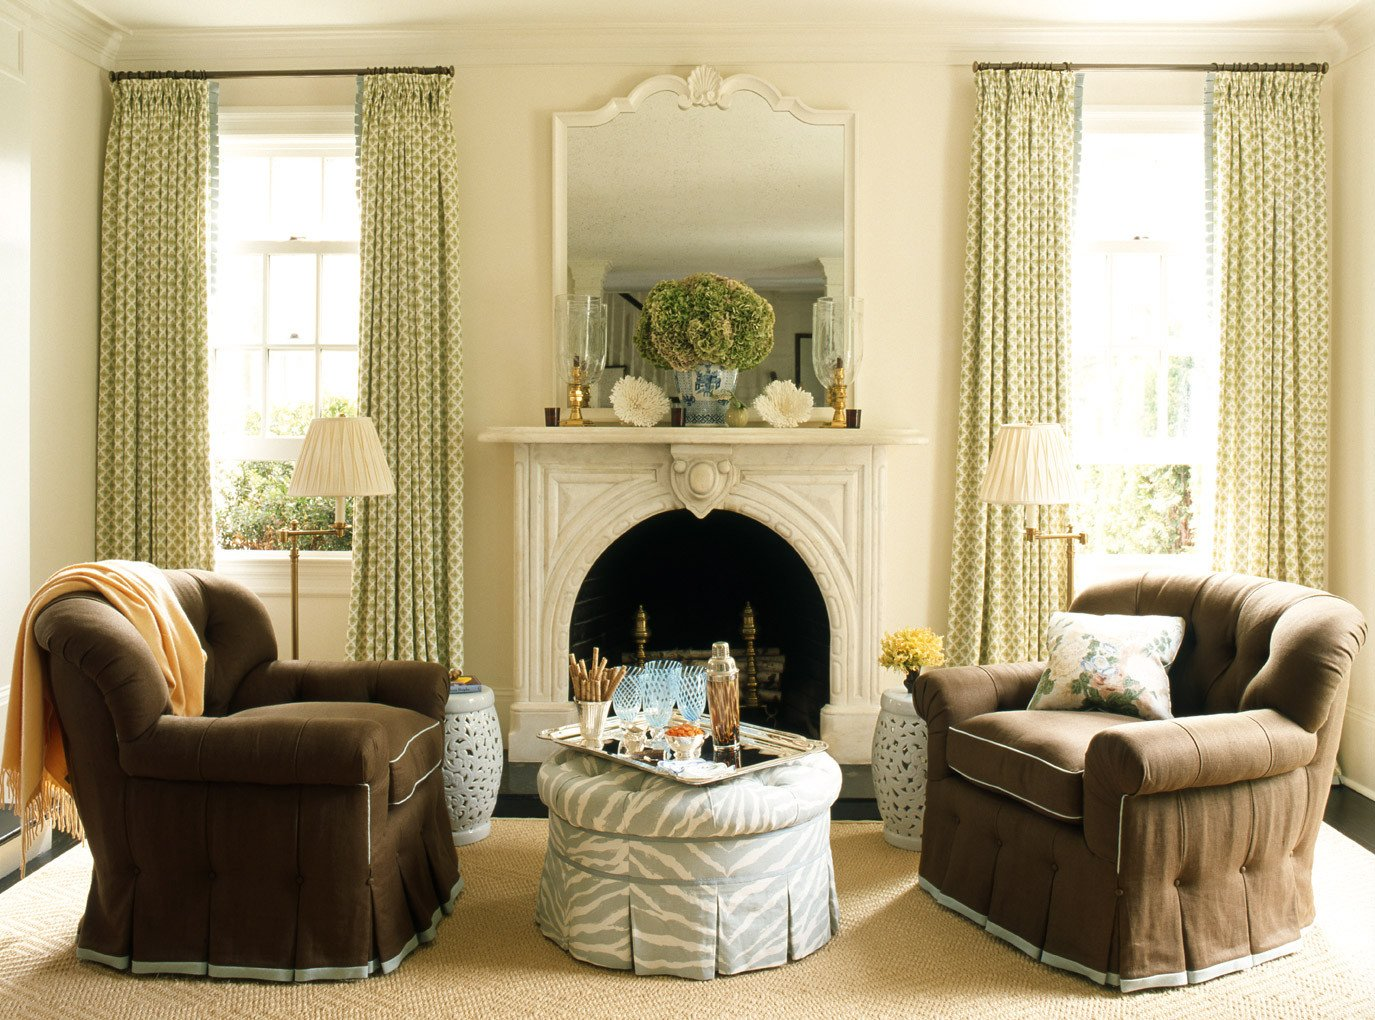 Comfortable Classic Living Room Best Of How to Decorate Series Finding Your Decorating Style Home Stories A to Z